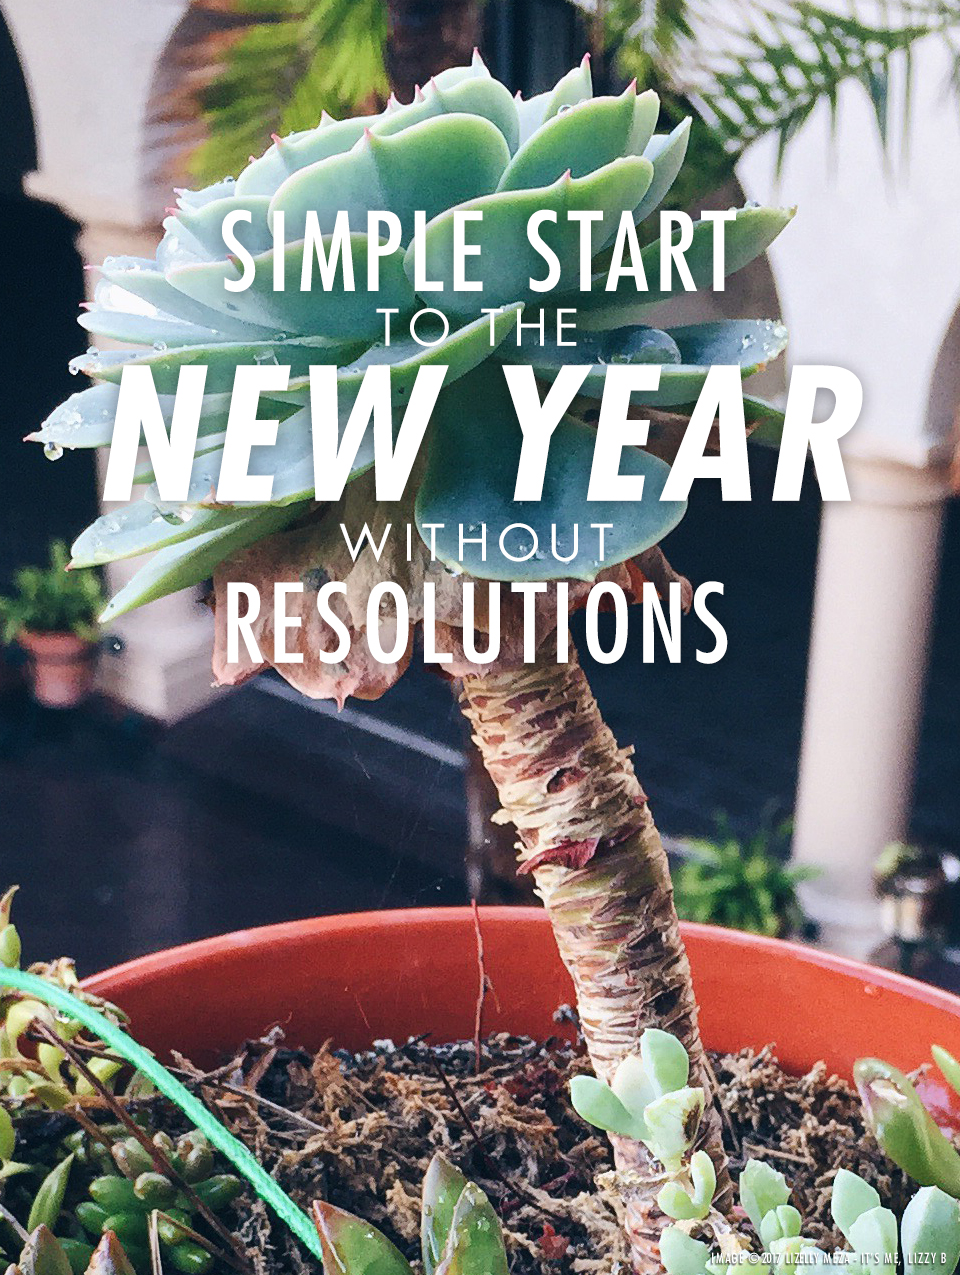 Simple Start to the New Year without Resolutions // It's Me, Lizzy B - Musings on Life, Business, & The Pursuit of Curiosity // Personal blog of Lizelly Meza